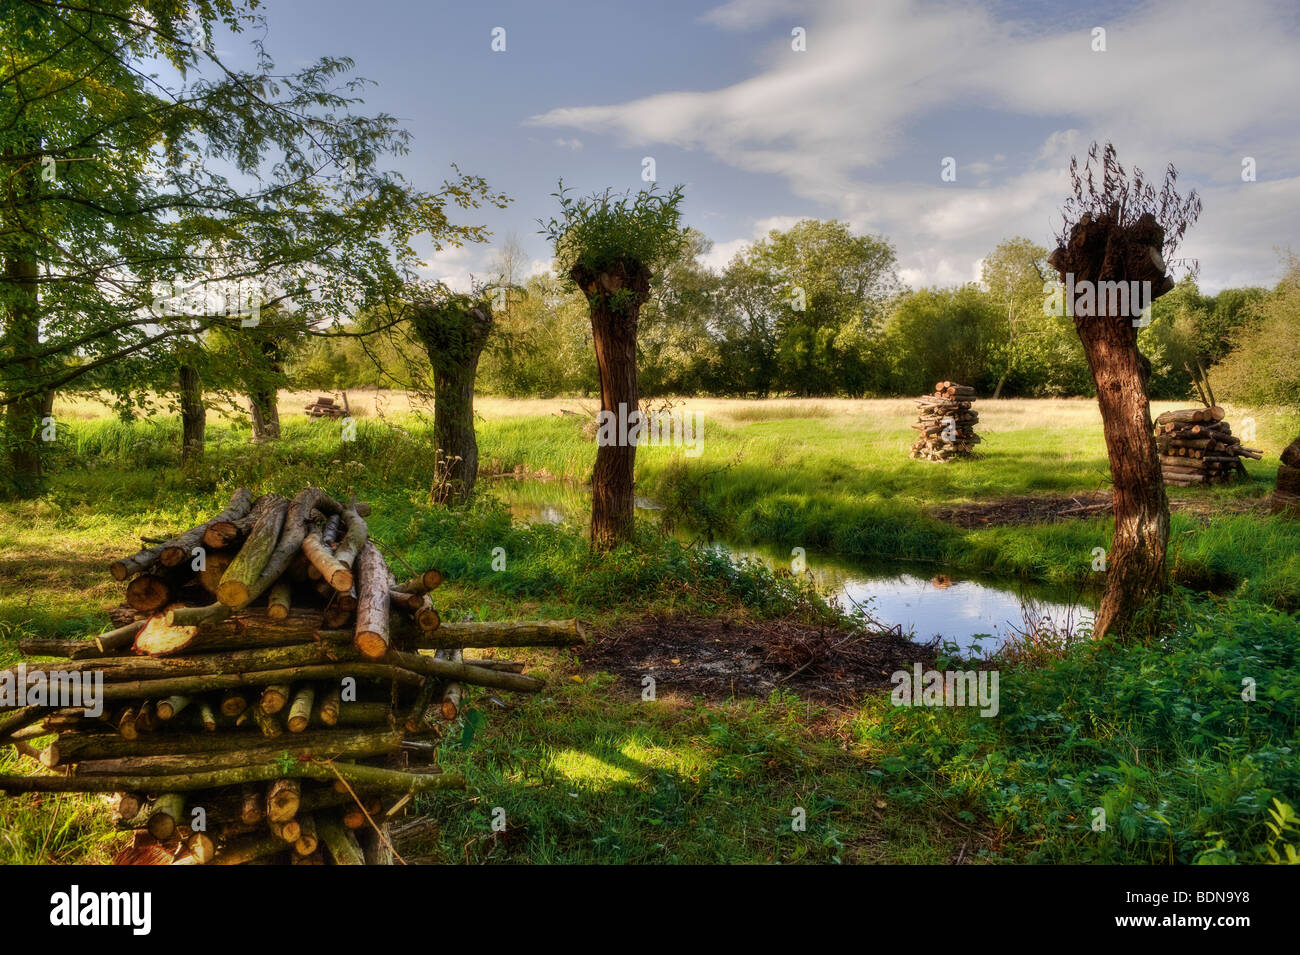 Willows recently pollarded with log stacks by a river - Stock Image